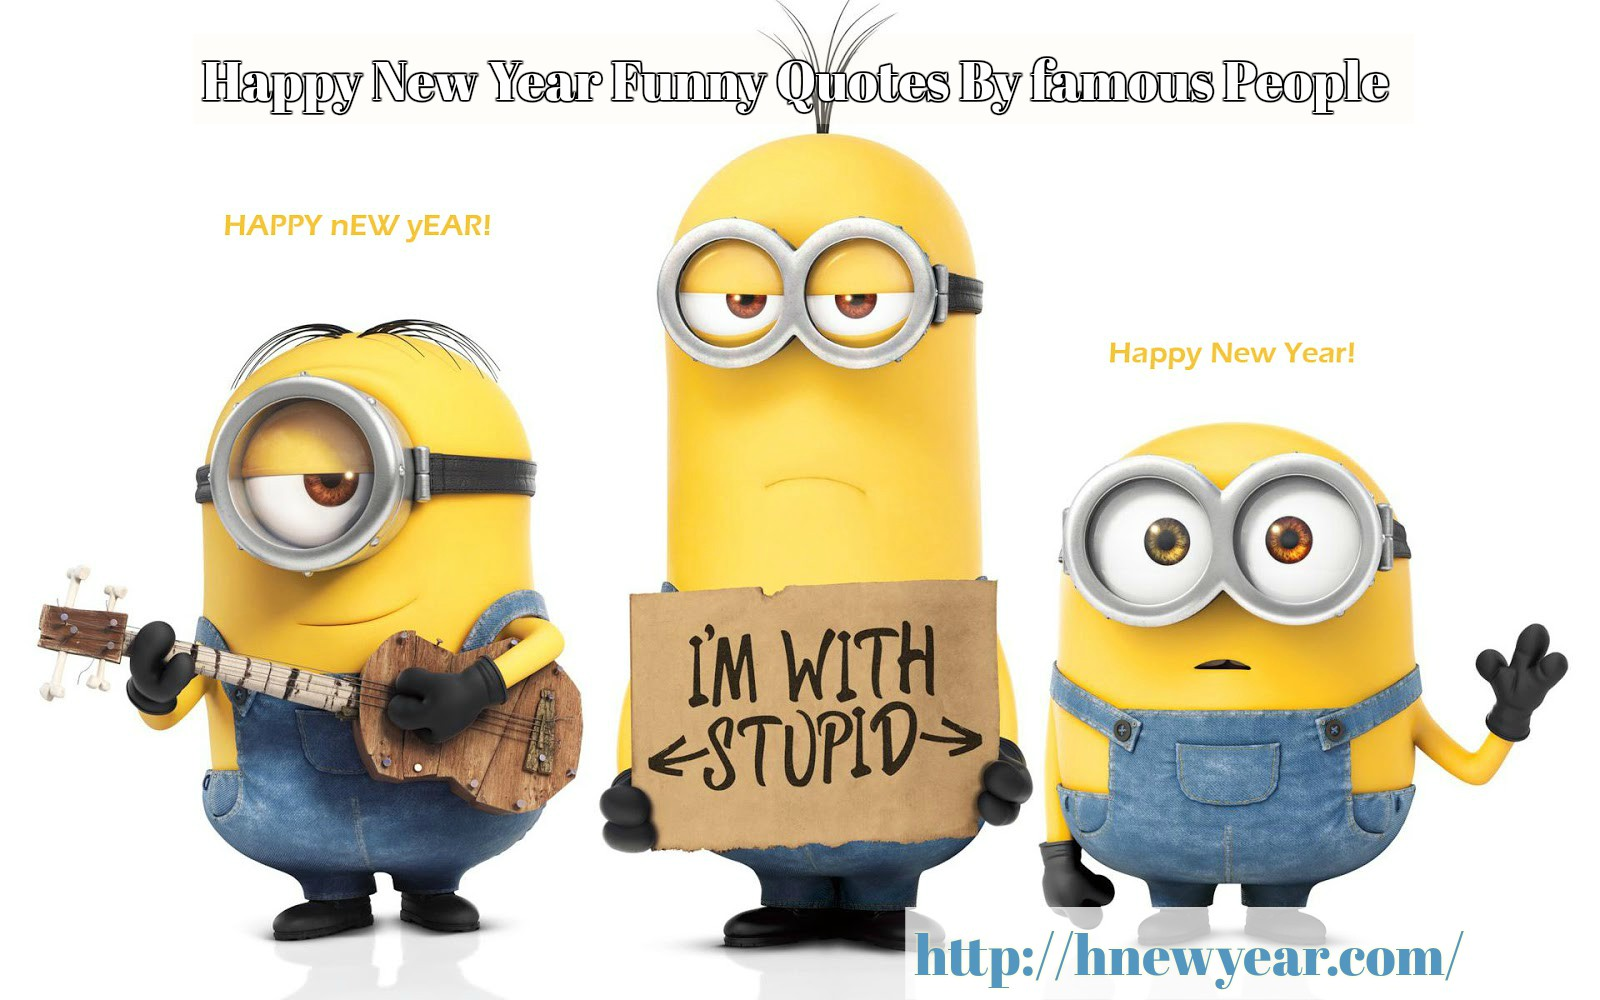 30 Best Happy New Year Funny Quotes By famous People